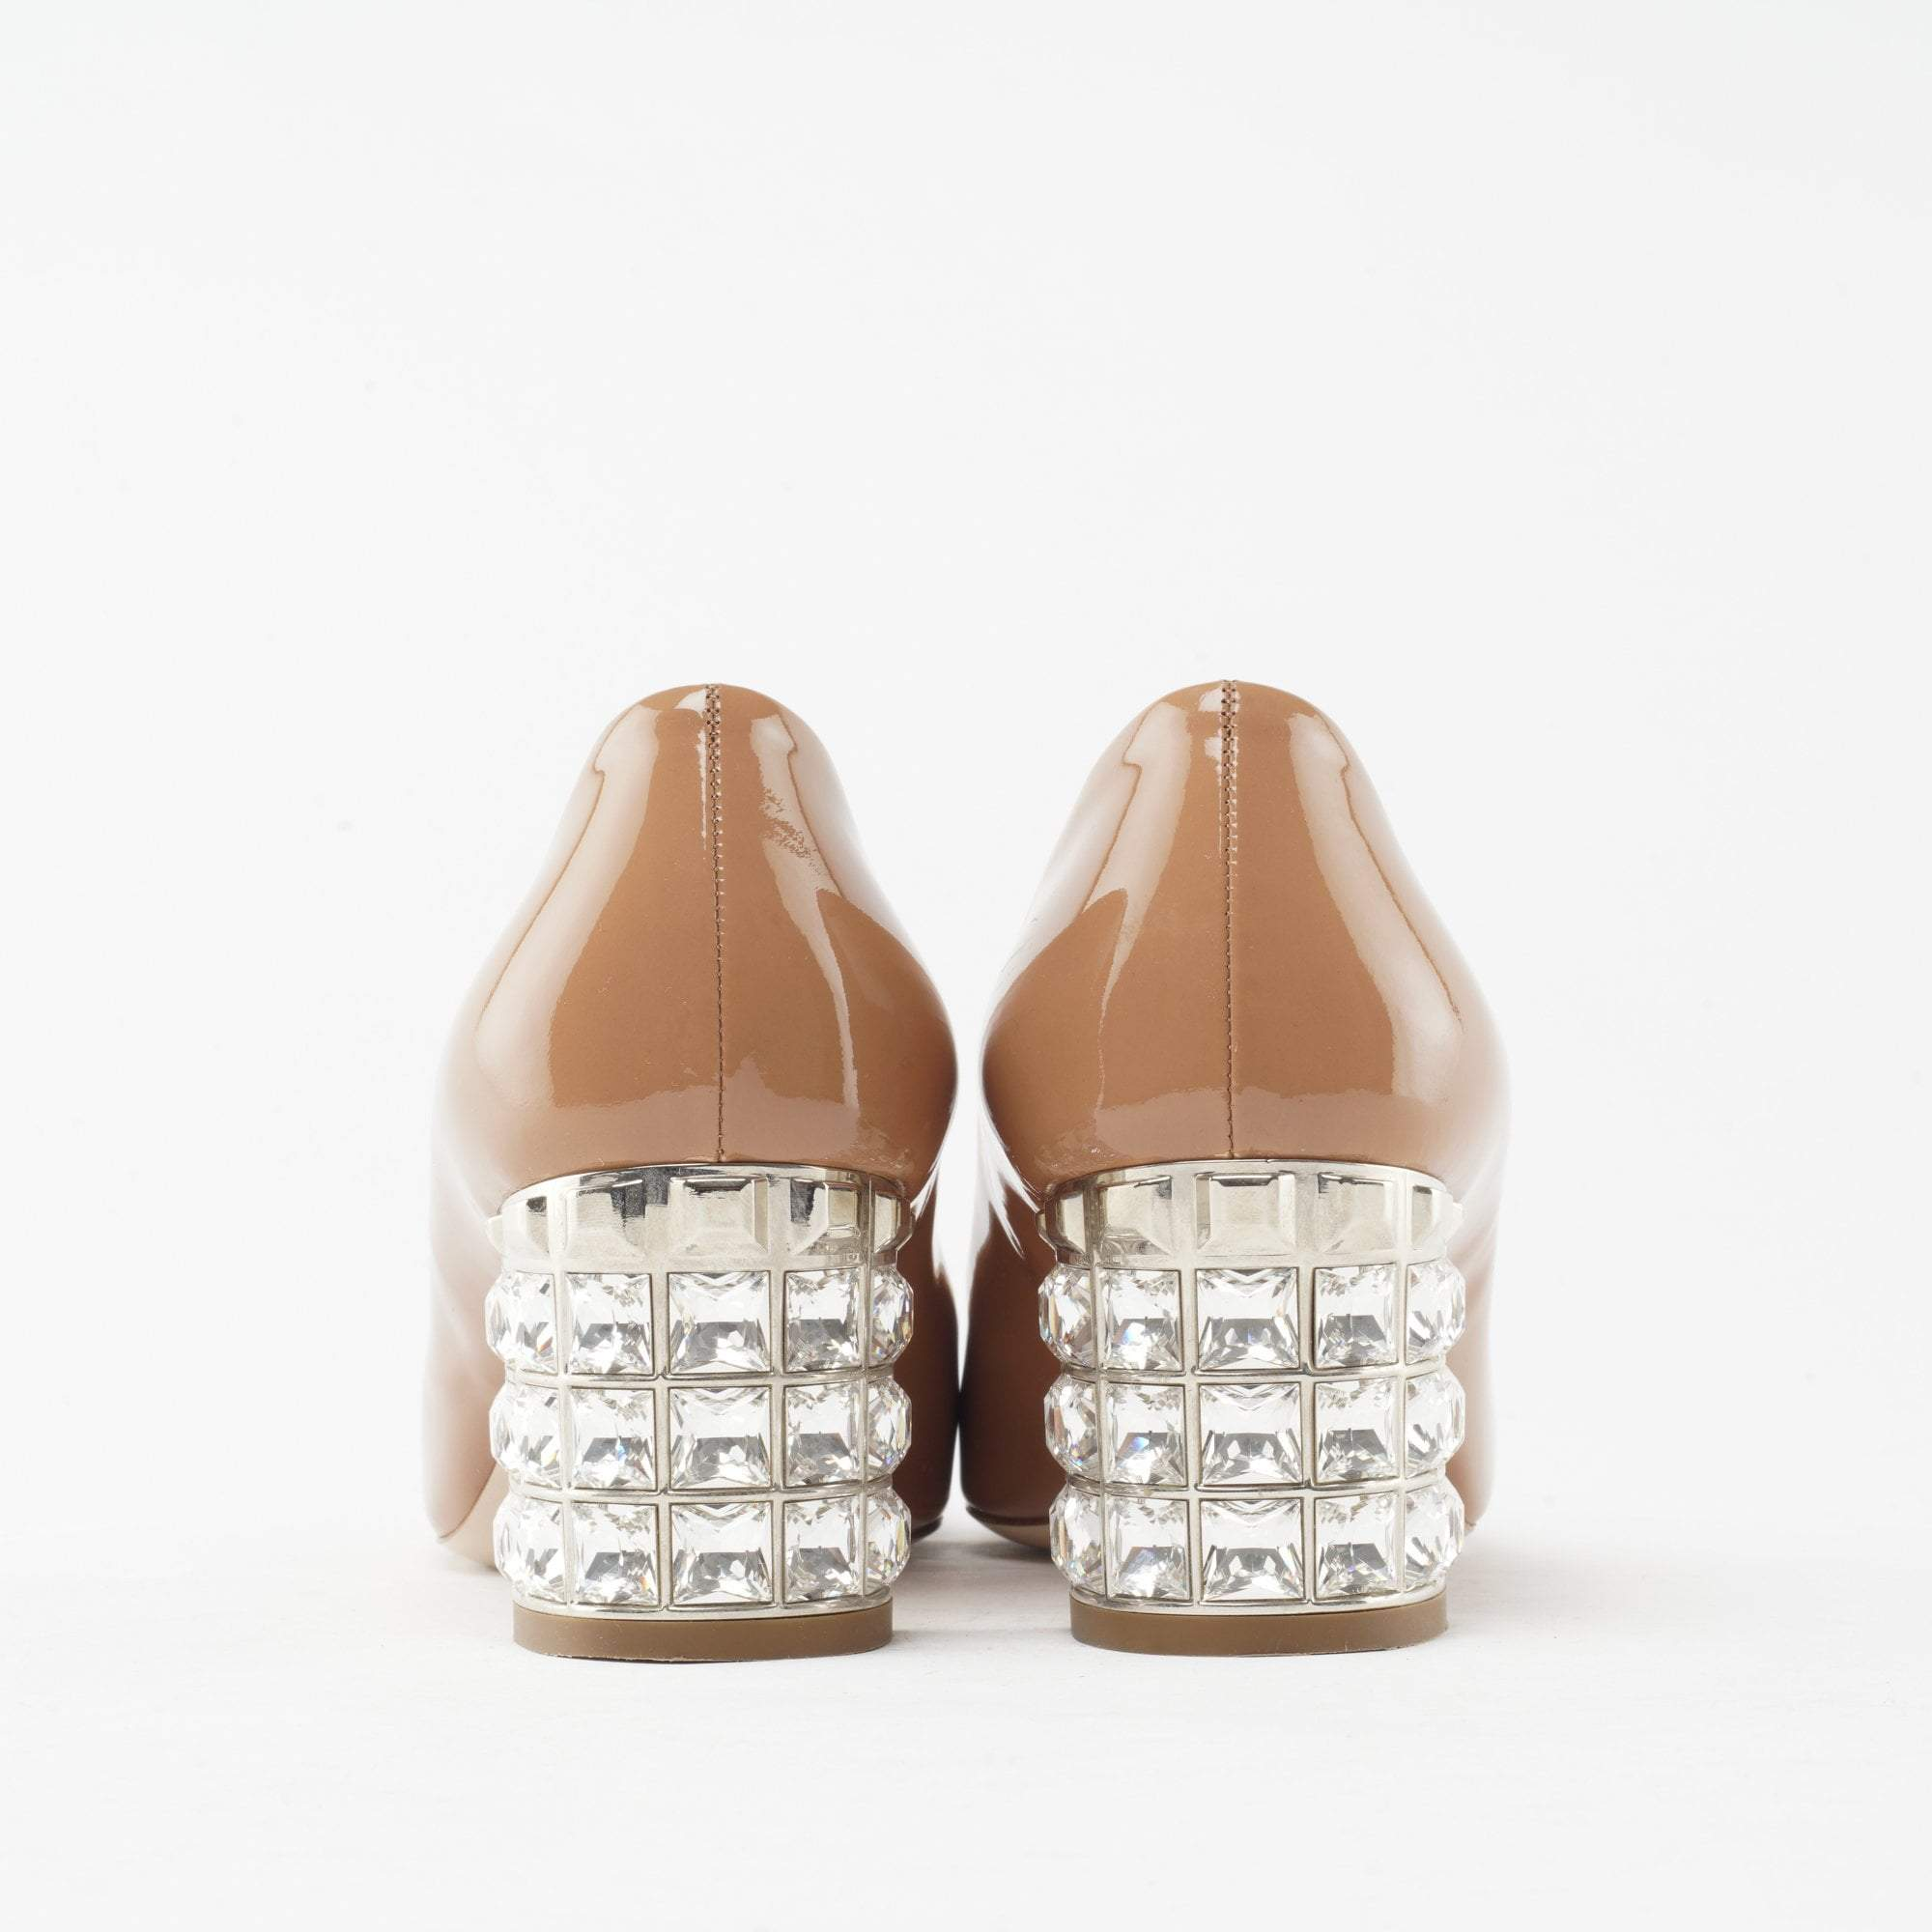 Miu Miu Brown Crystal Embellished Pumps